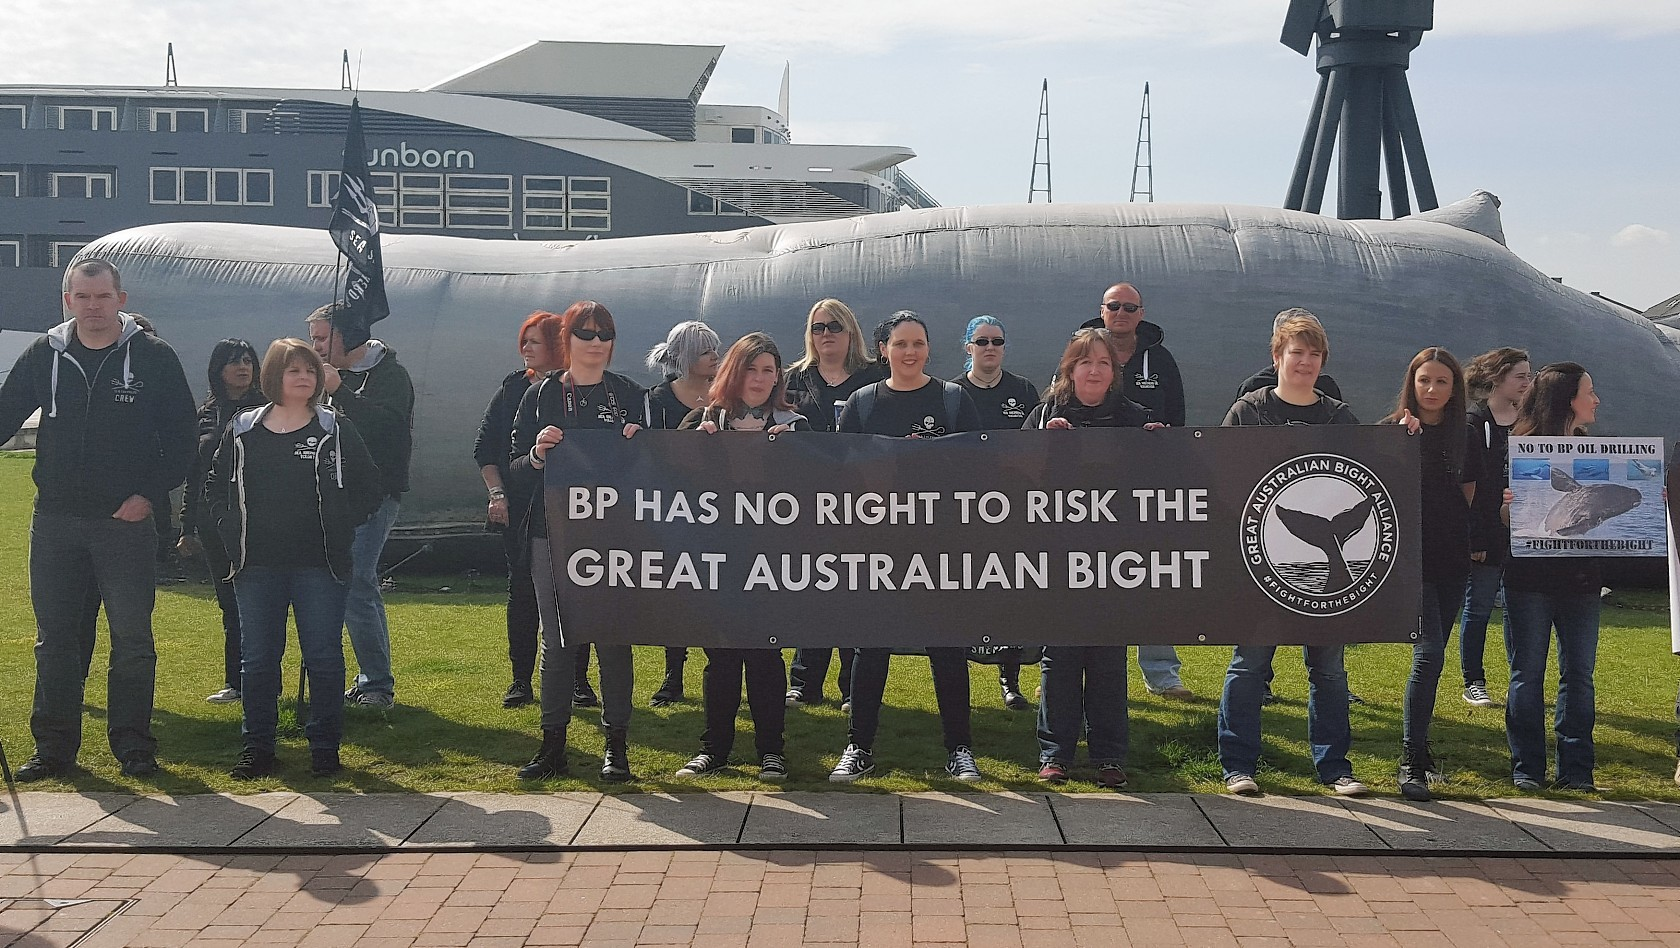 Protesters outside BP's meeting